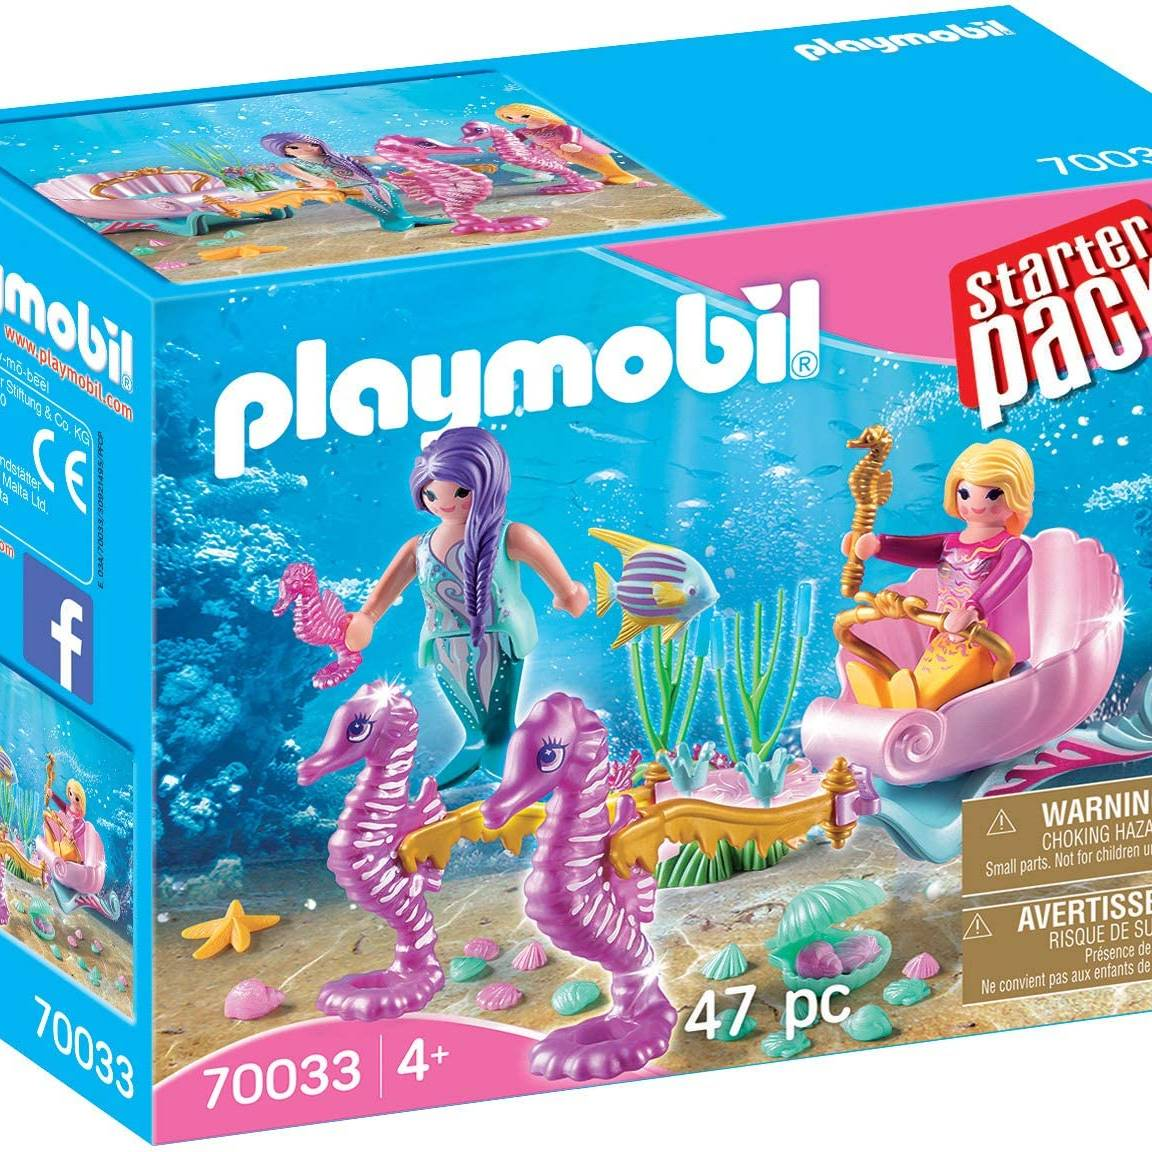 Playmobil 70033 Starter Pack Seahorse Carriage